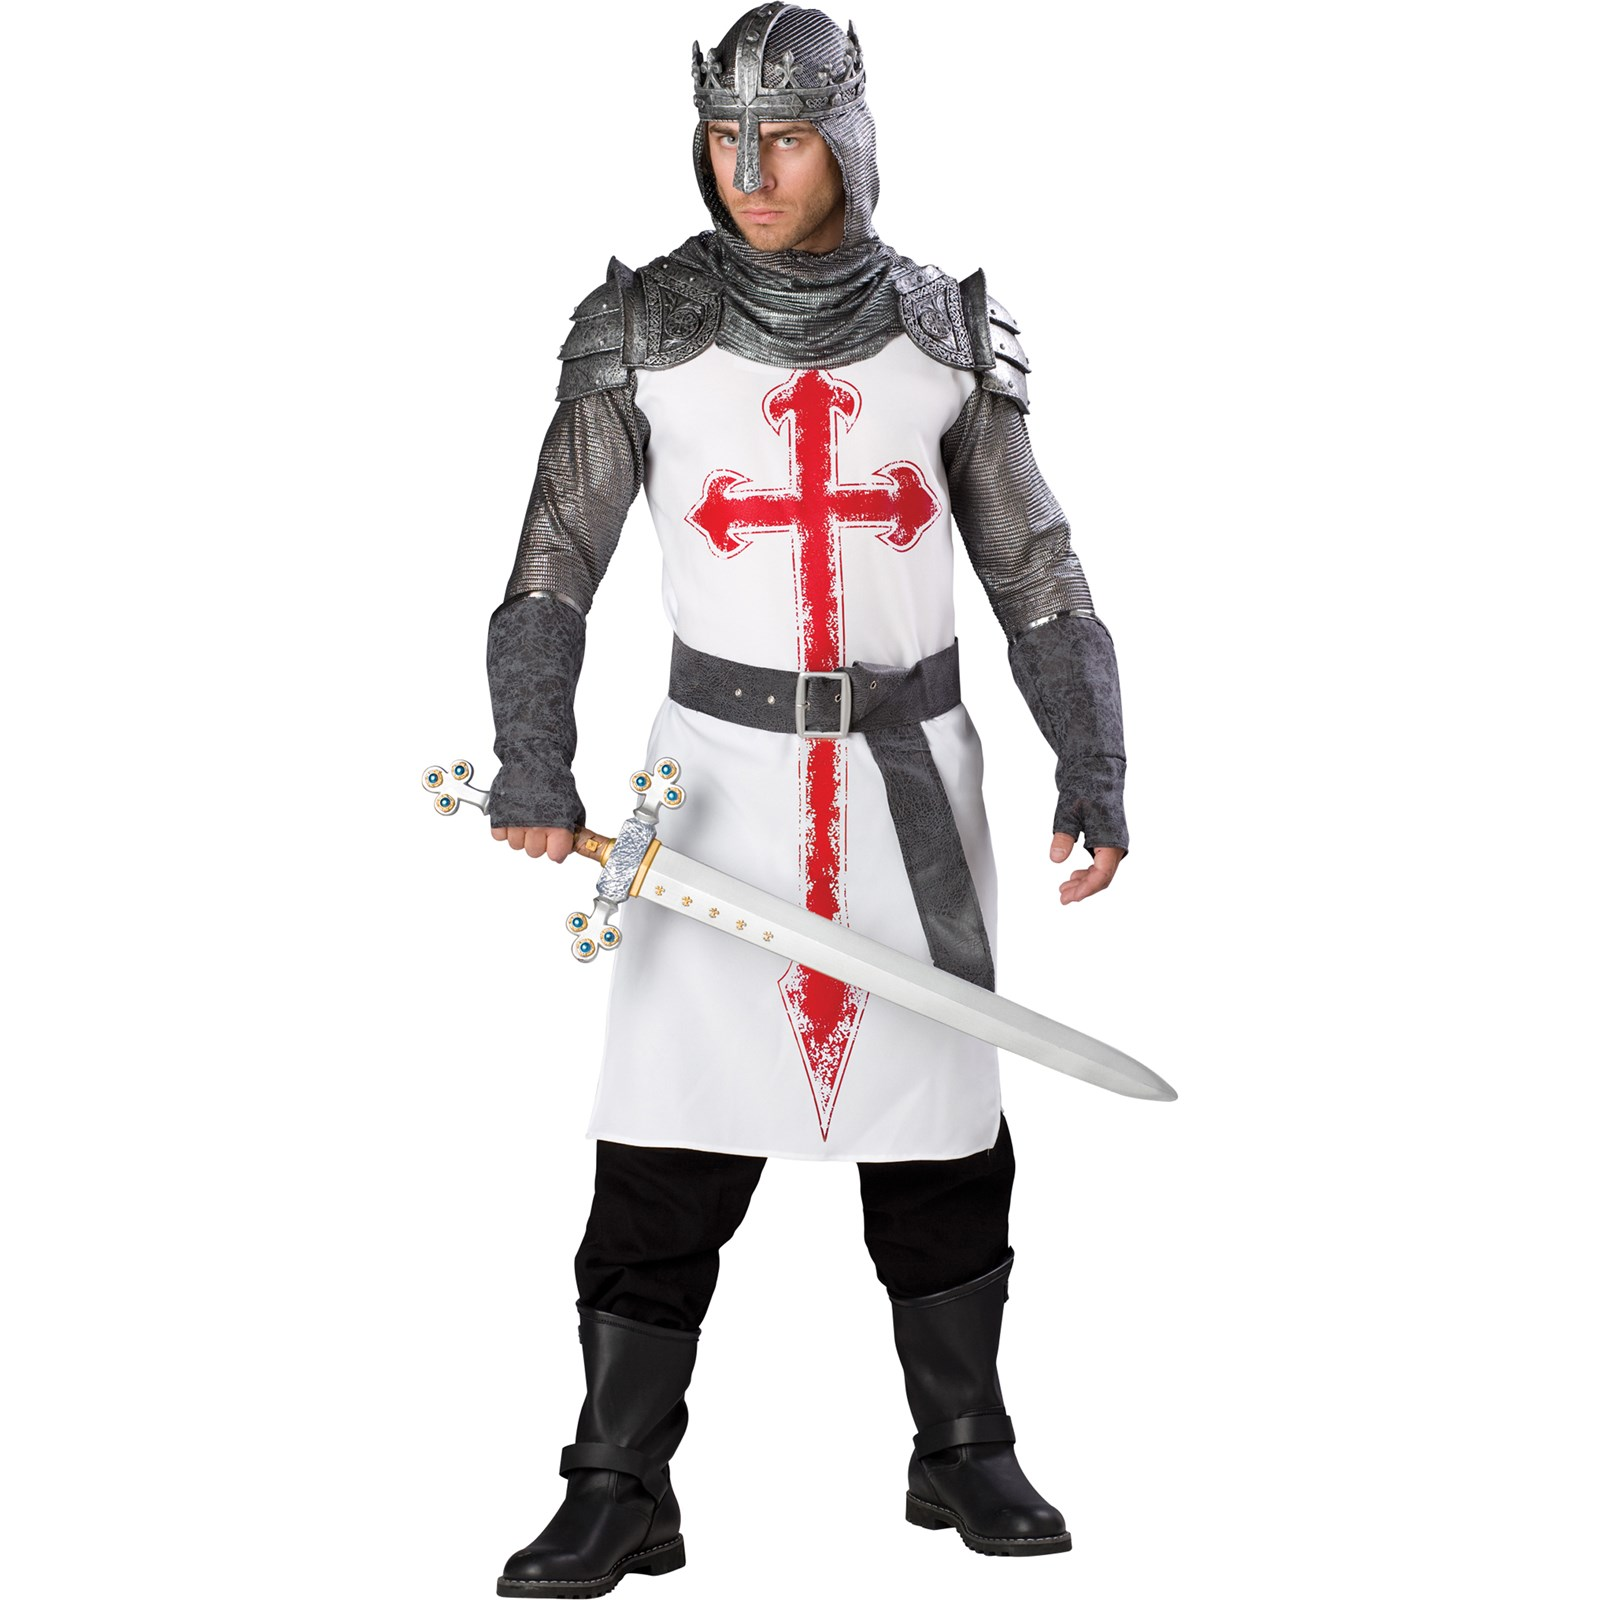 Outdoor Party Lighting picture on crusader premier adult costume with Outdoor Party Lighting, Outdoor Lighting ideas 624d41a9dca174f3b96b197de9f6a6fa